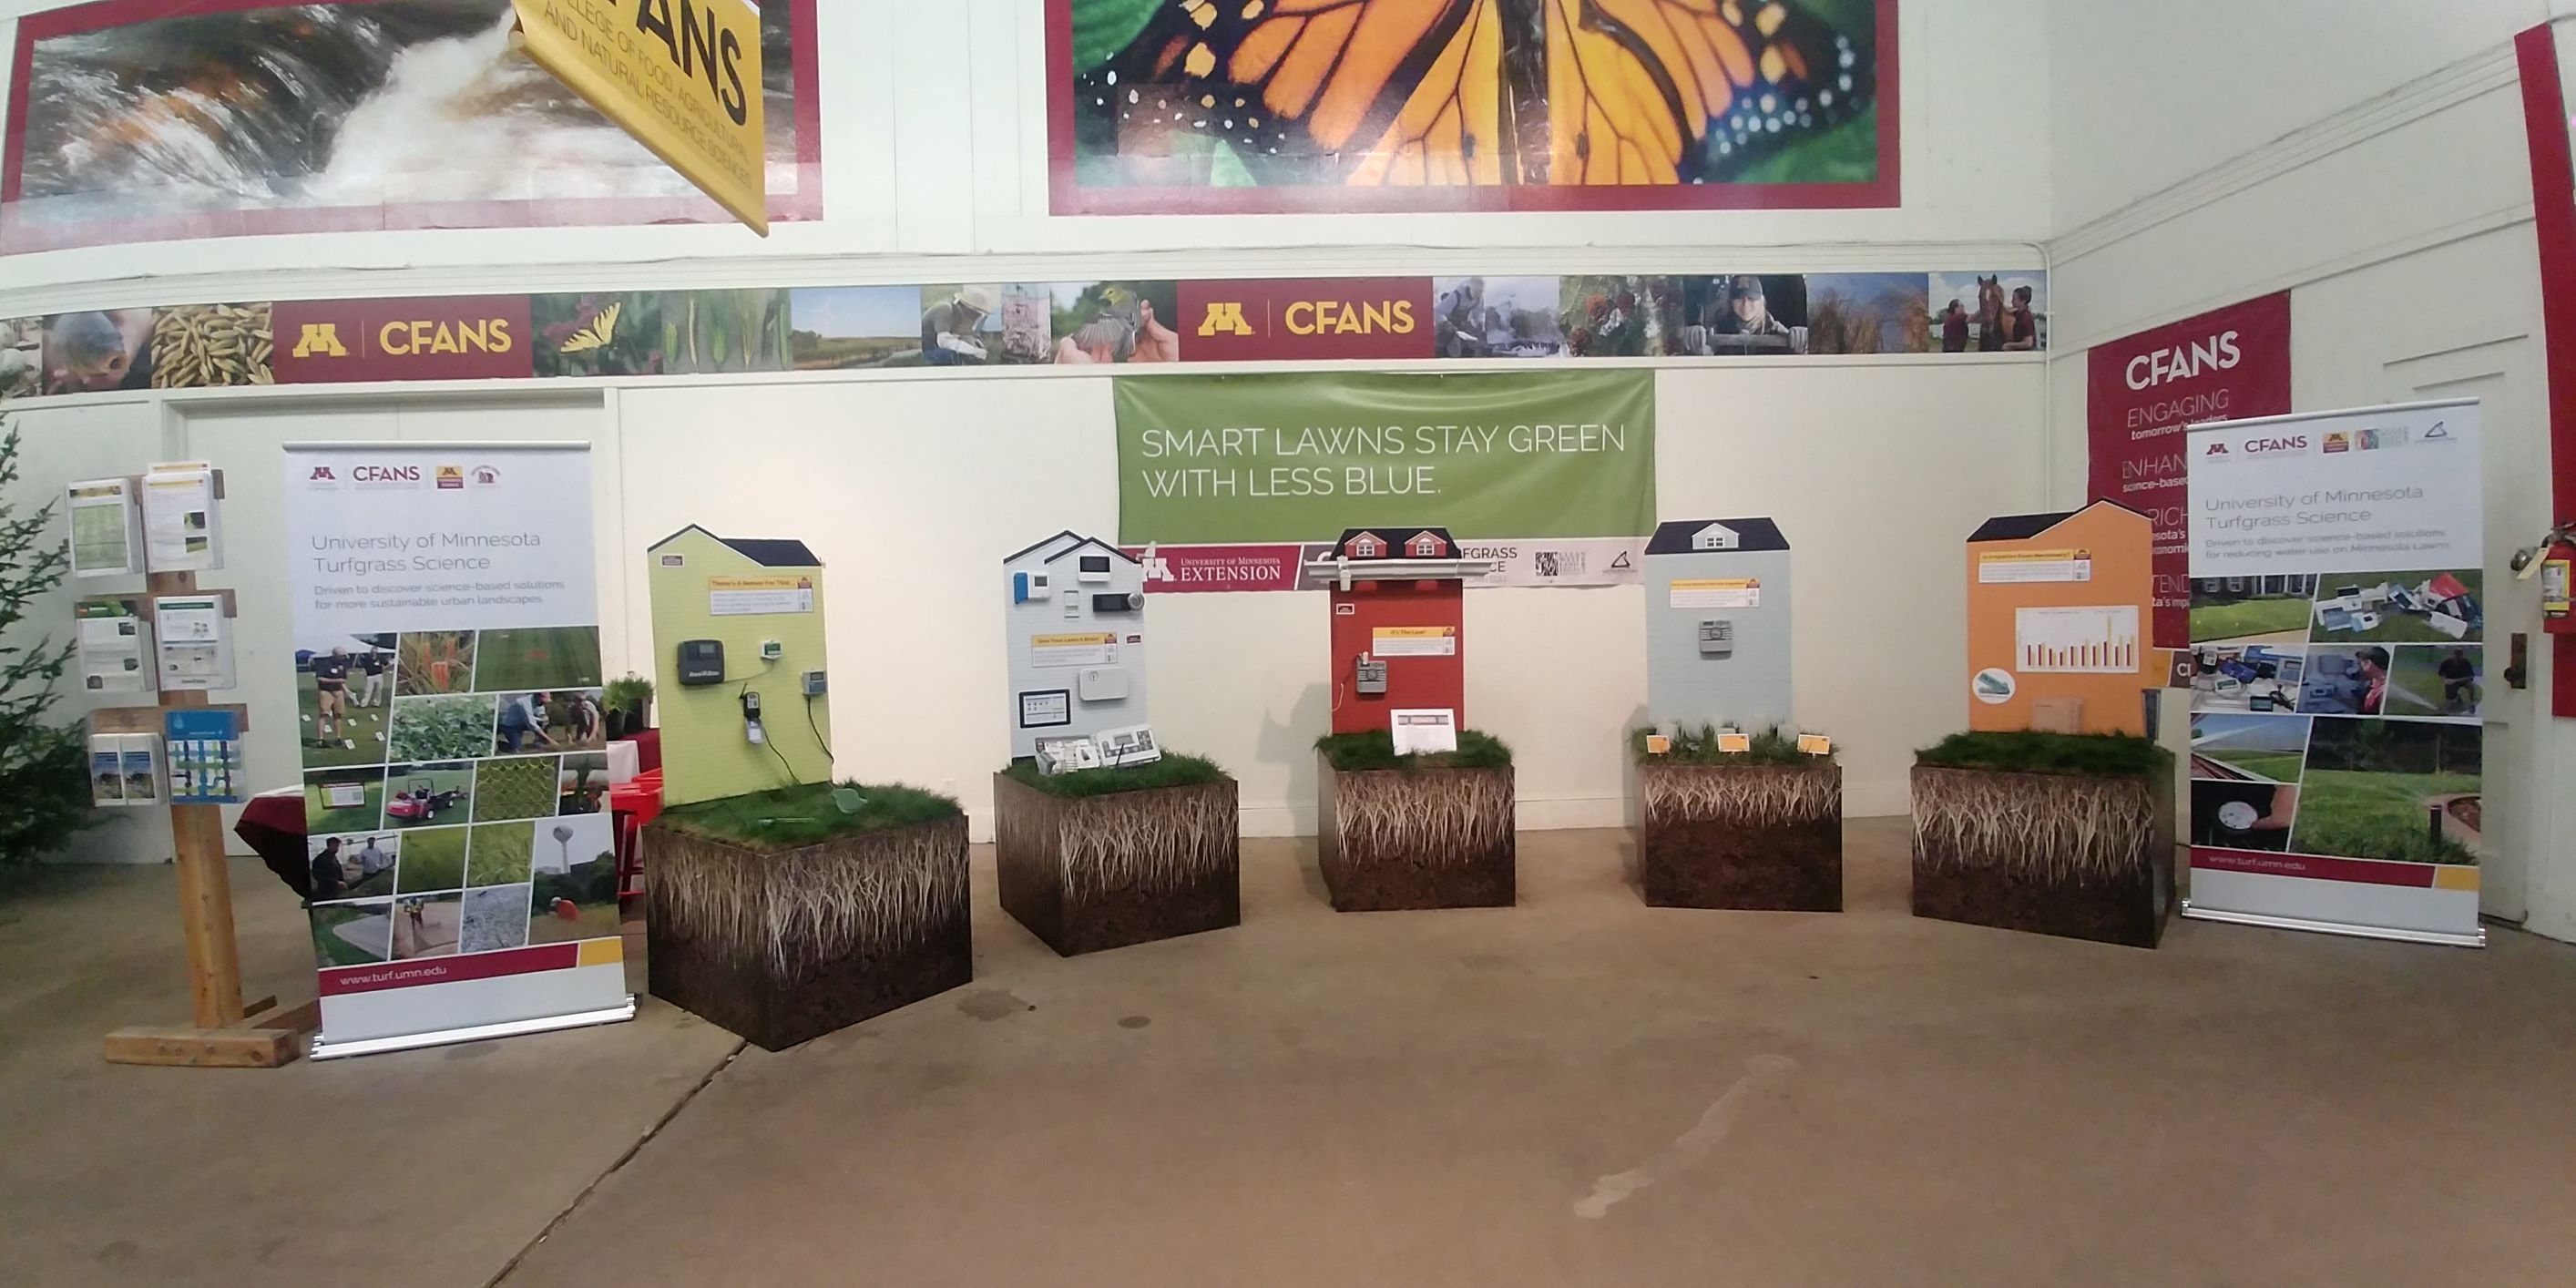 Water conservation display at the Minnesota State Fair